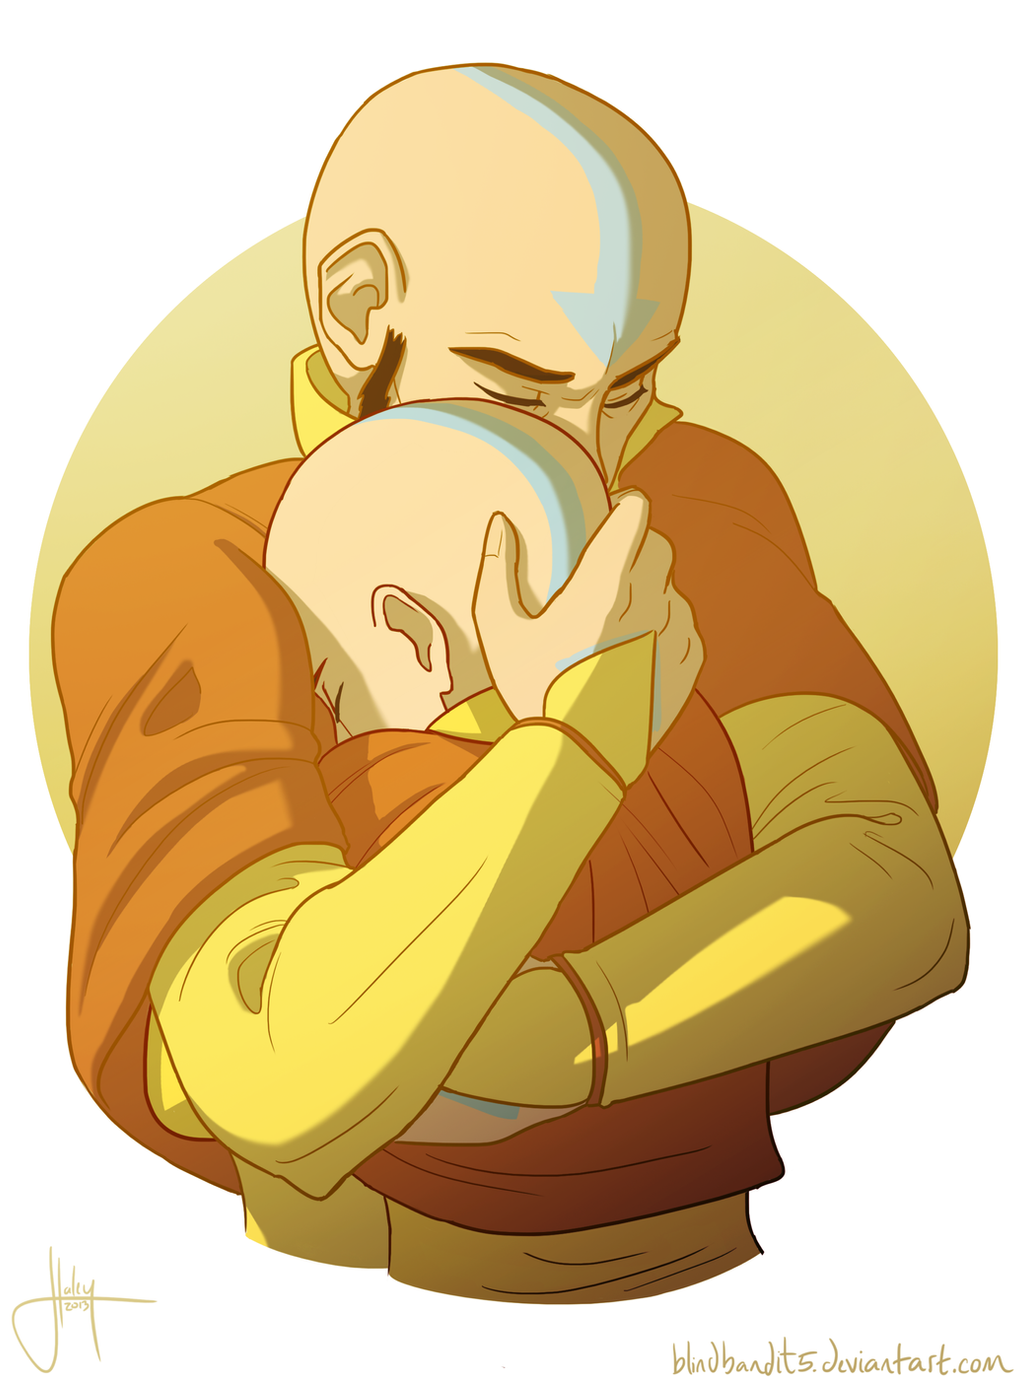 Tenzin and the Avatar pt. 1 by blindbandit5